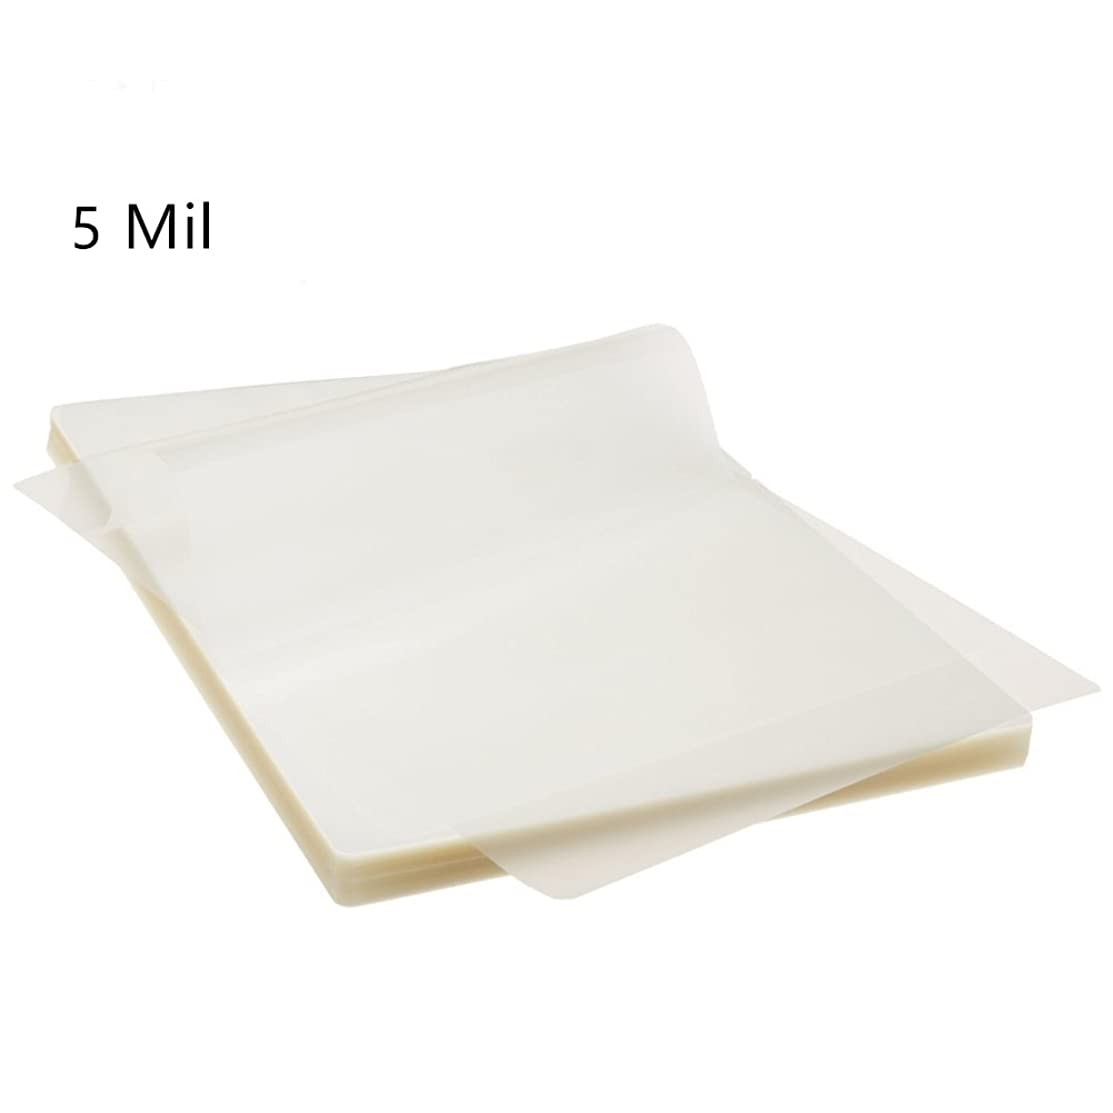 Hybsk Thermal Laminating Pouches,5 Inches x 7 Inches,2 Mil Thick,Hot Clear Glossy (100 Pack)